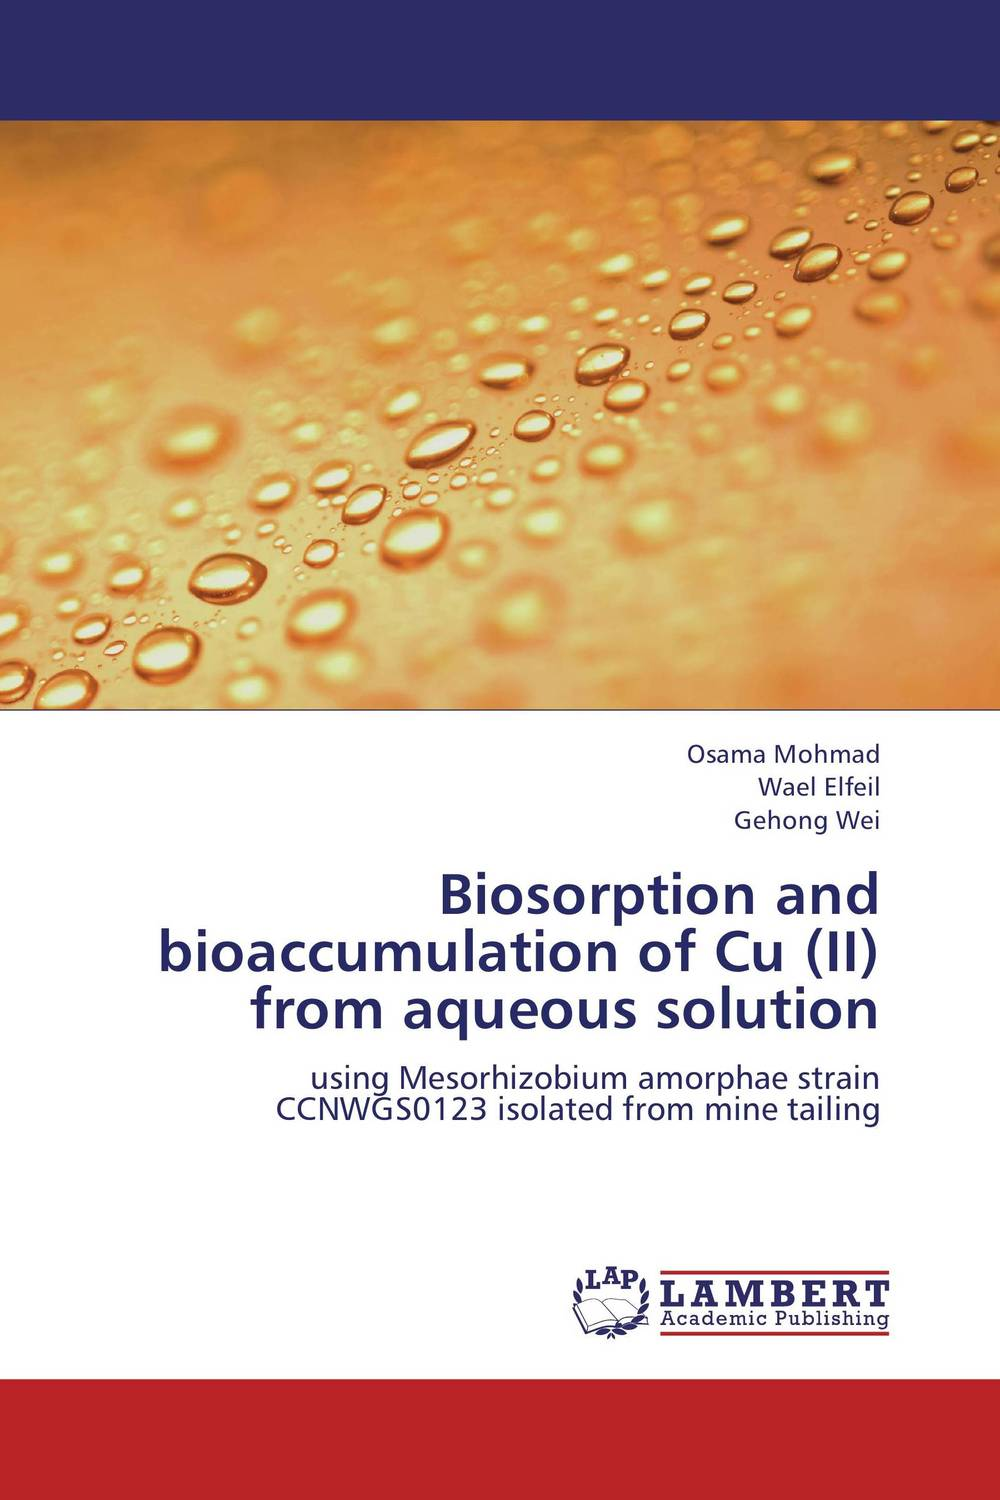 Biosorption and bioaccumulation of Cu (II) from aqueous solution evaluation of aqueous solubility of hydroxamic acids by pls modelling